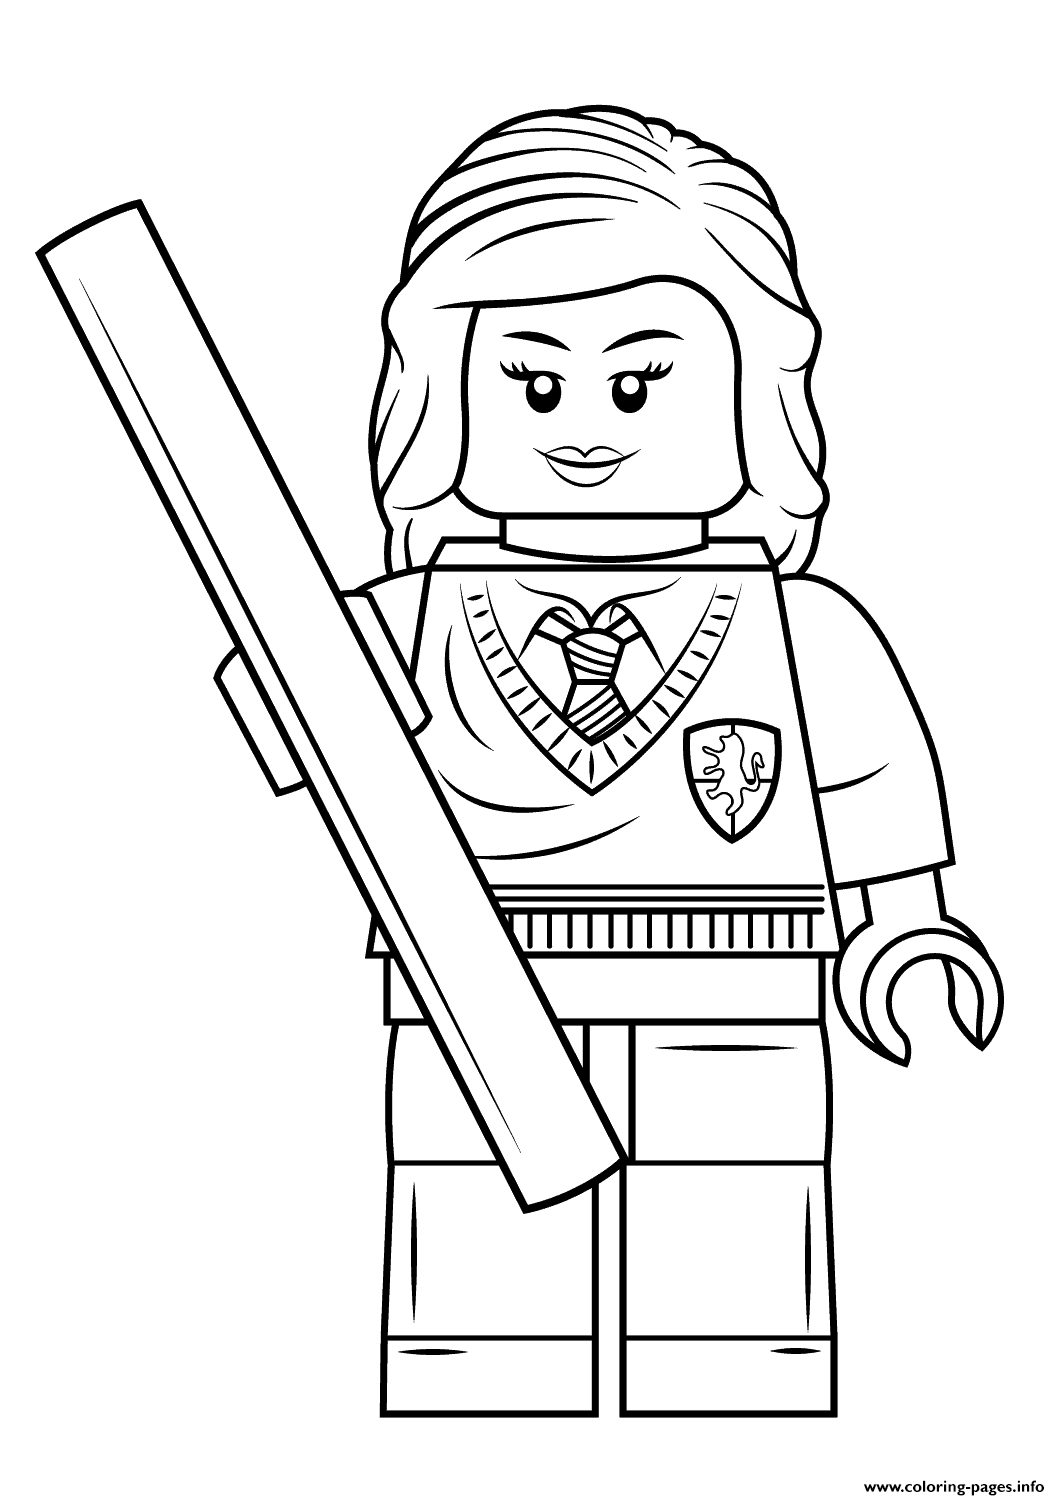 Coloring book pages info - Harry Potter Ginny Coloring Pages For Kids On Colors Of Pictures